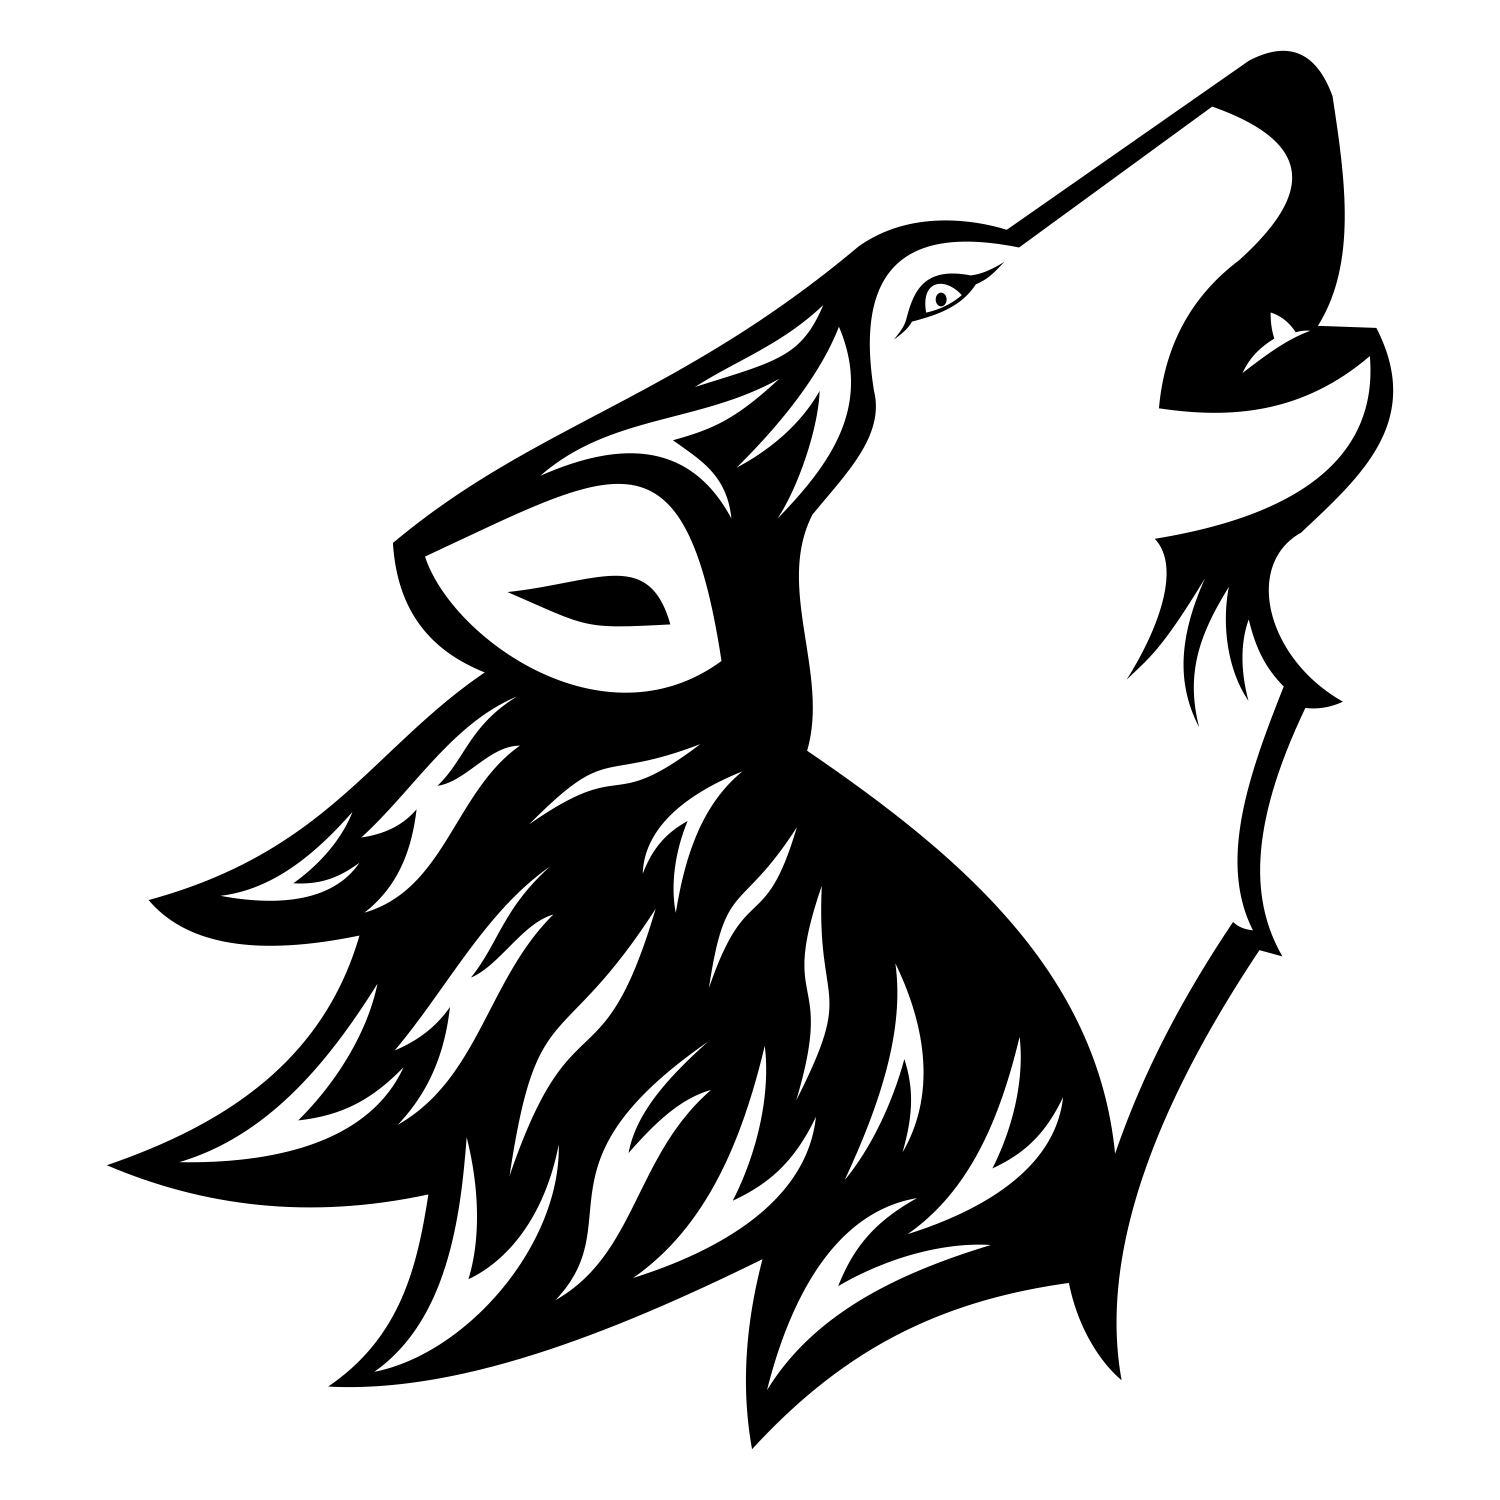 1500x1500 Wolf Vector 6 An Images Hub